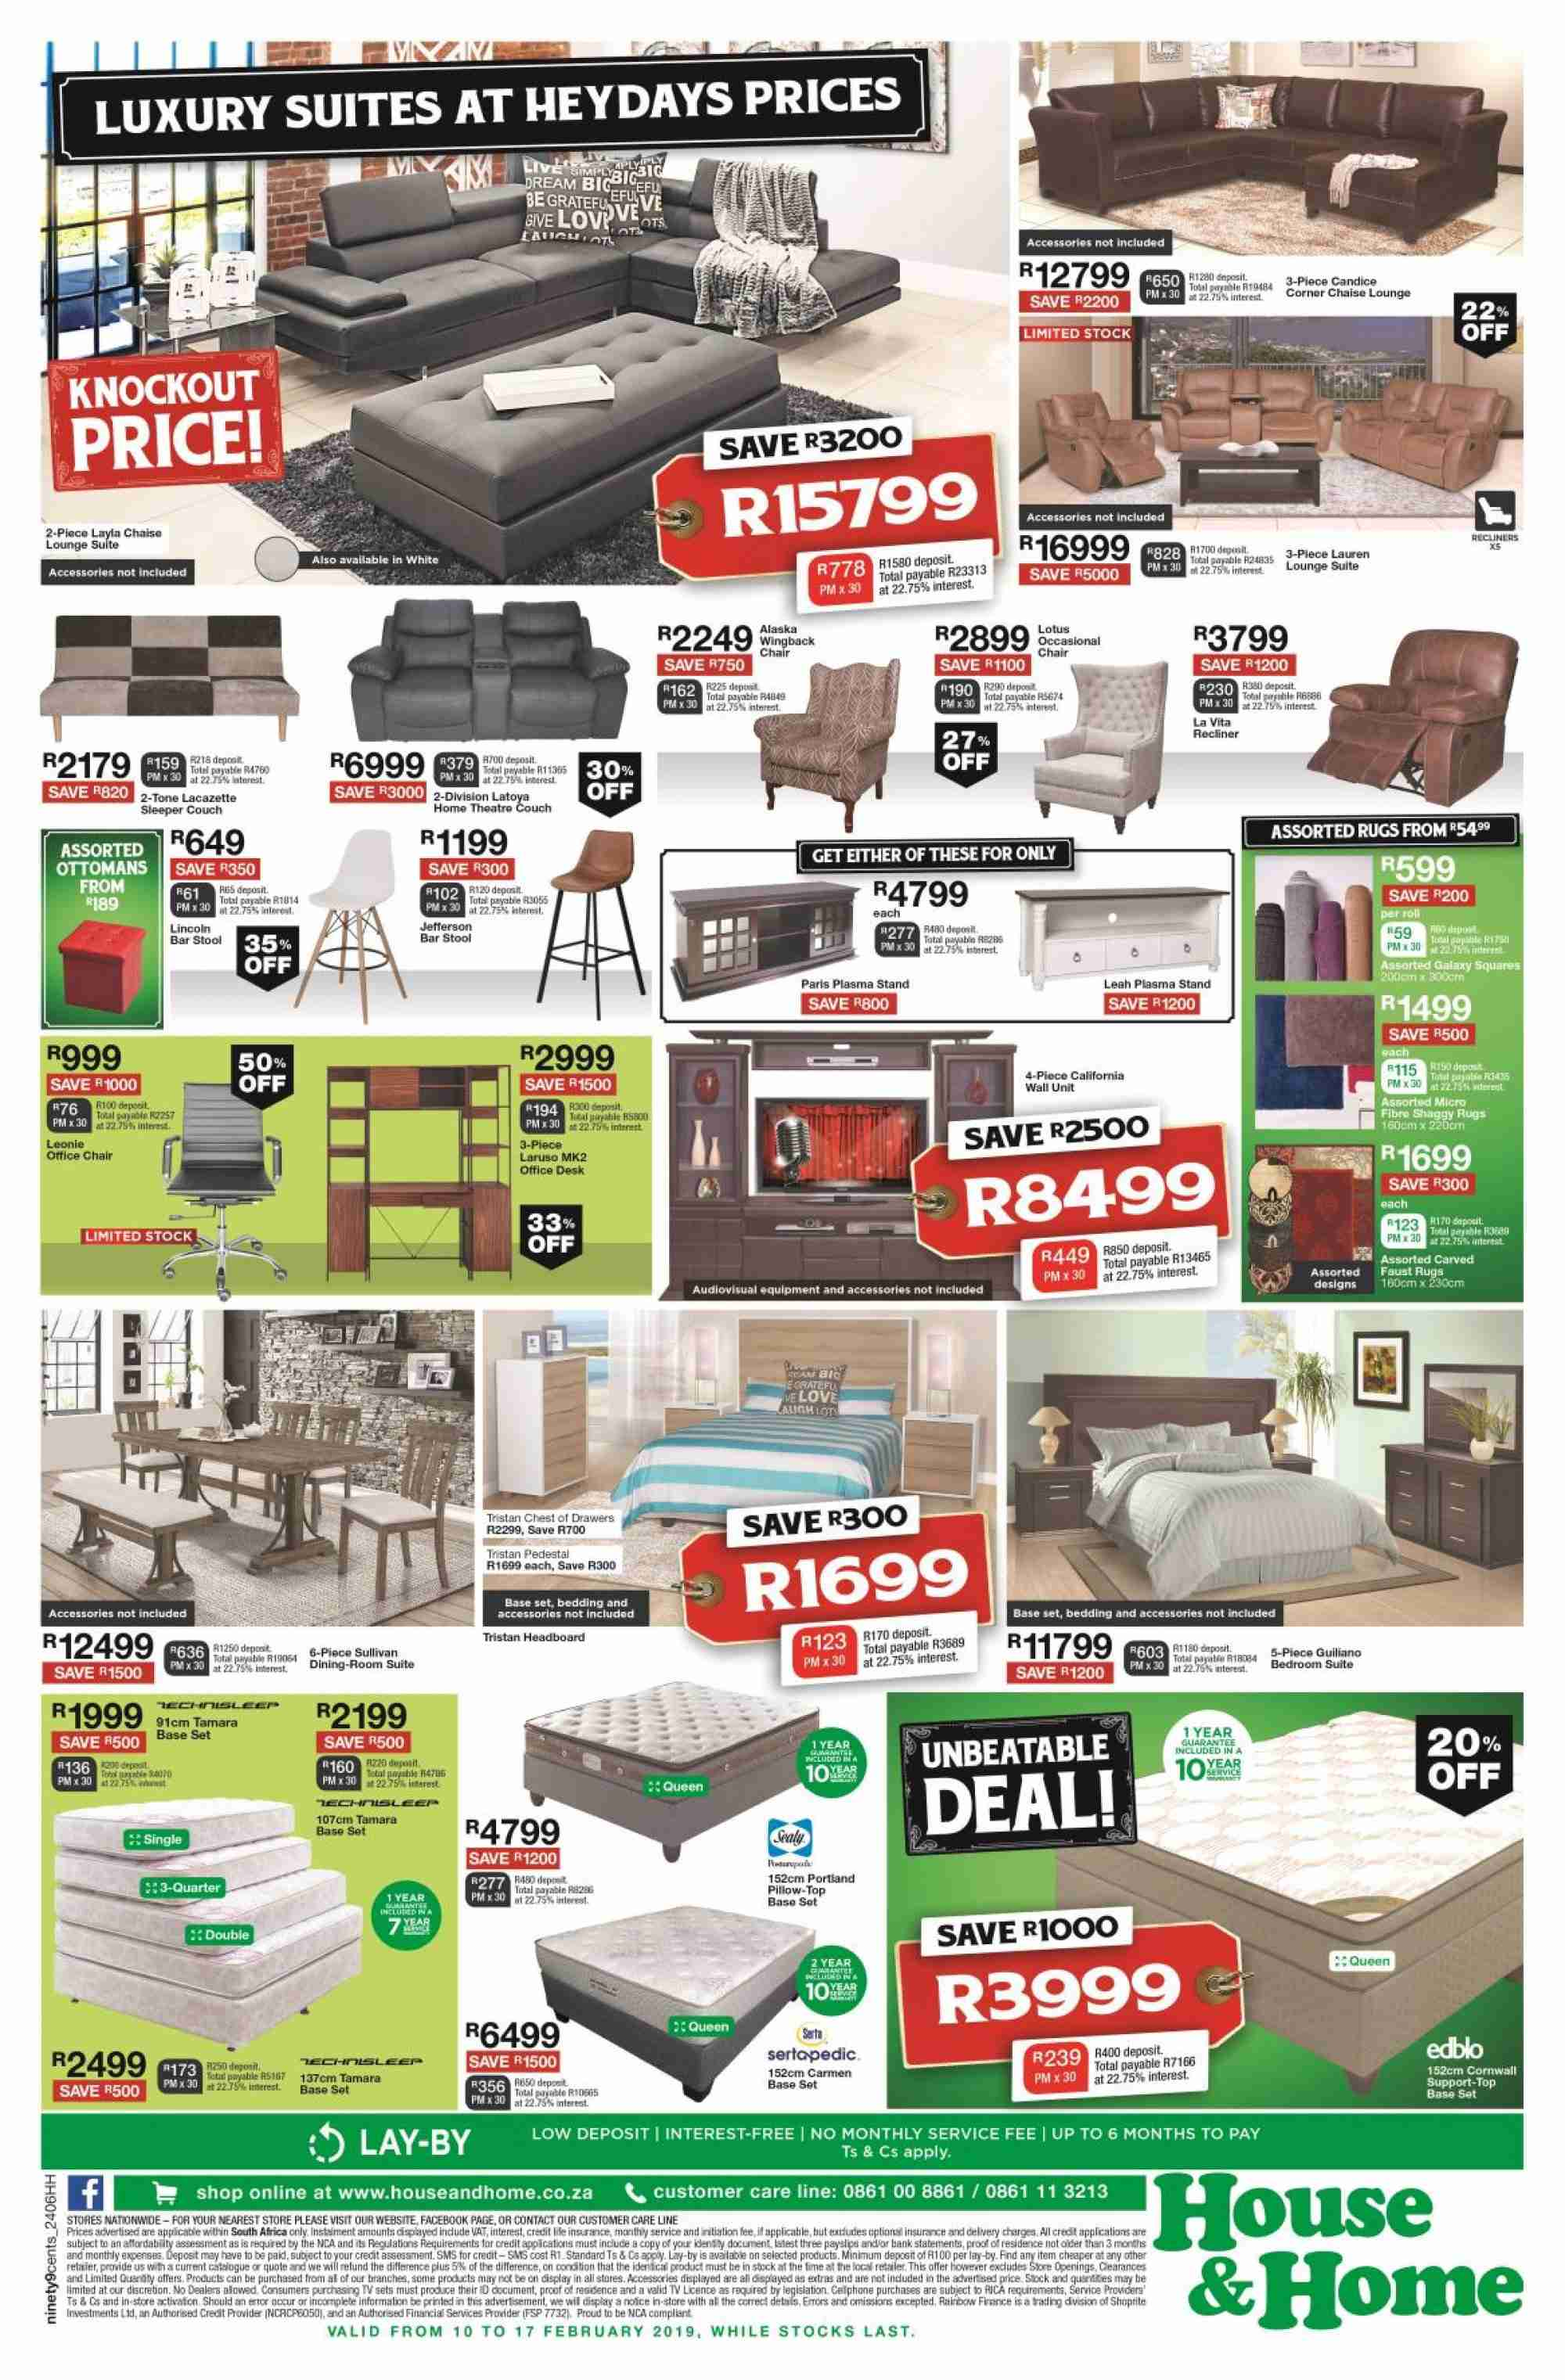 House & Home catalogue  - 02.10.2019 - 02.17.2019. Page 4.